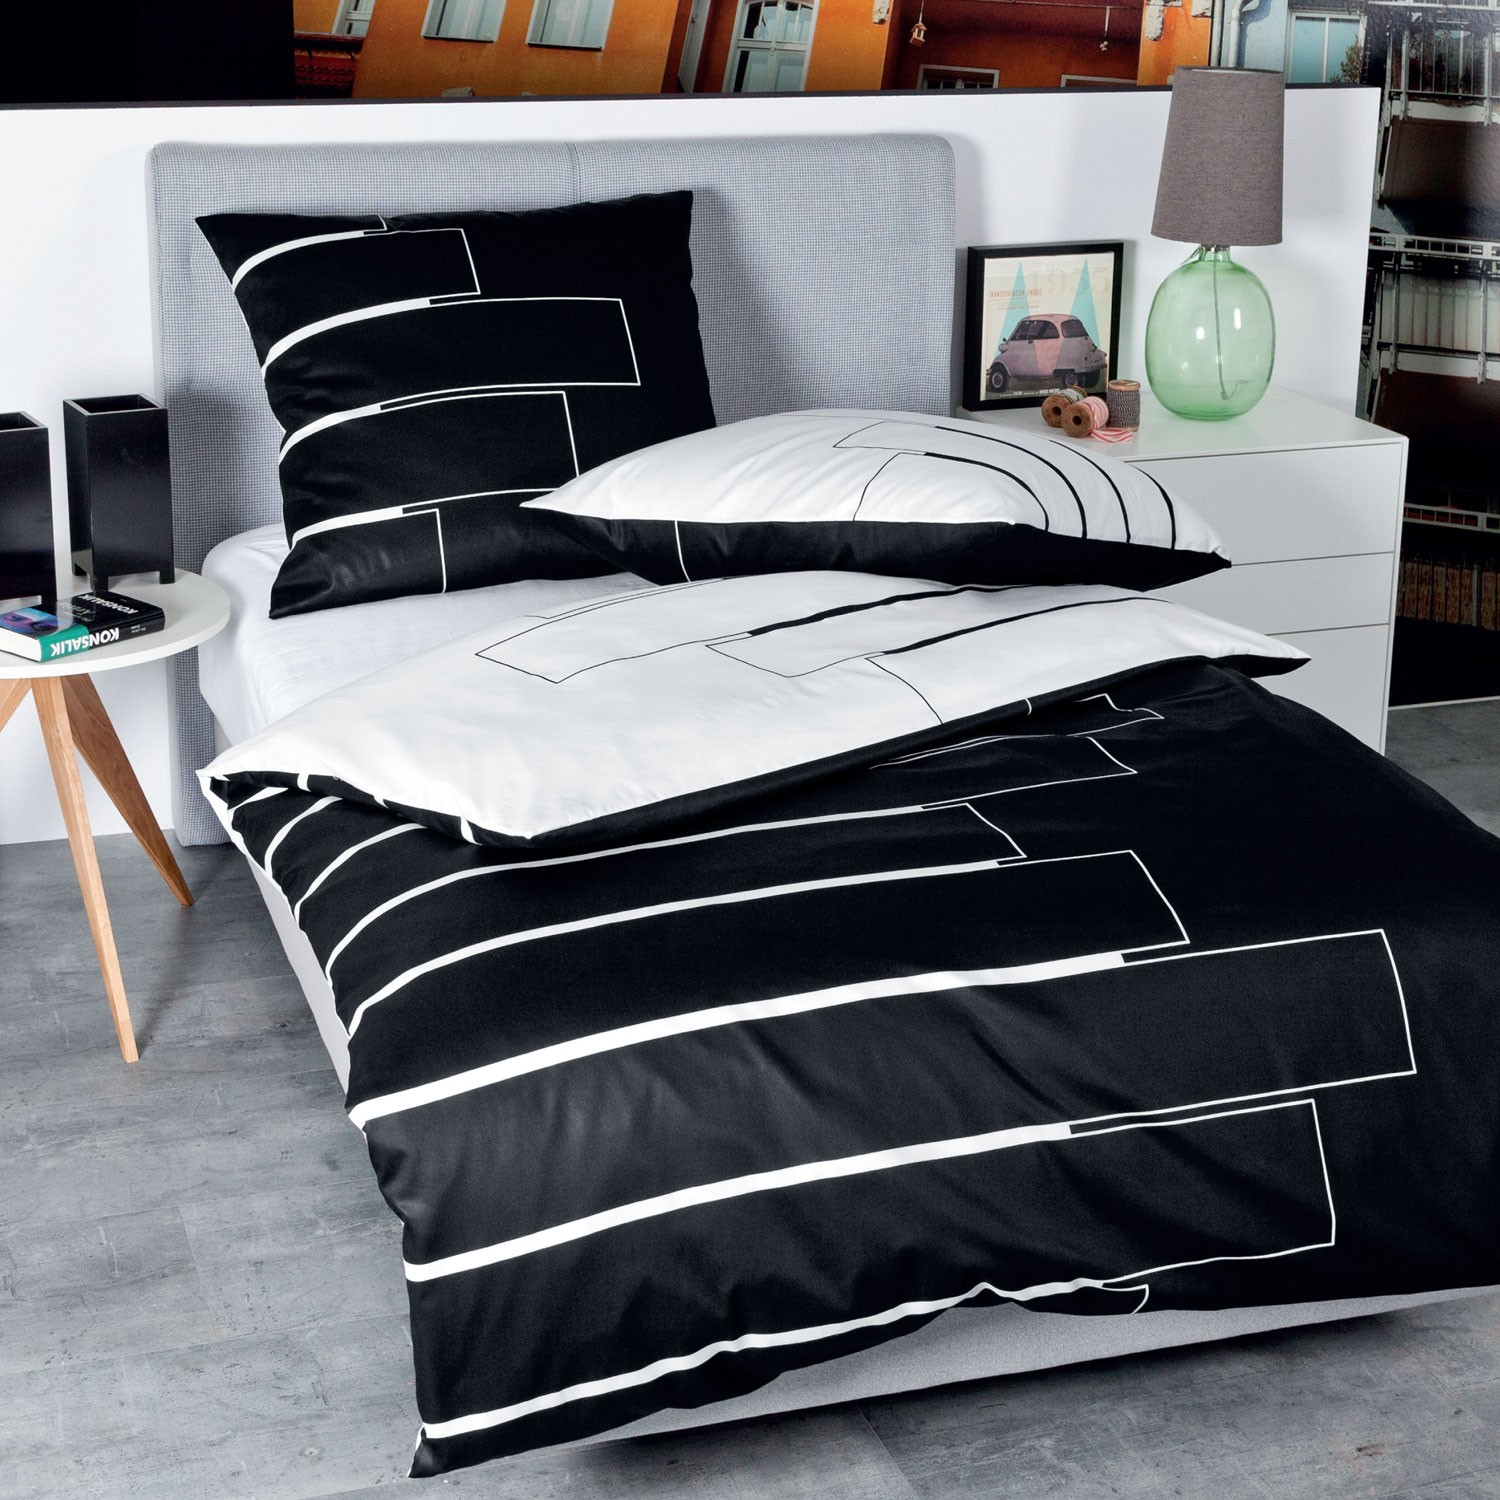 bettwsche janine simple janine bettwasche seersucker tango gra n aus weicher baumwolle das. Black Bedroom Furniture Sets. Home Design Ideas